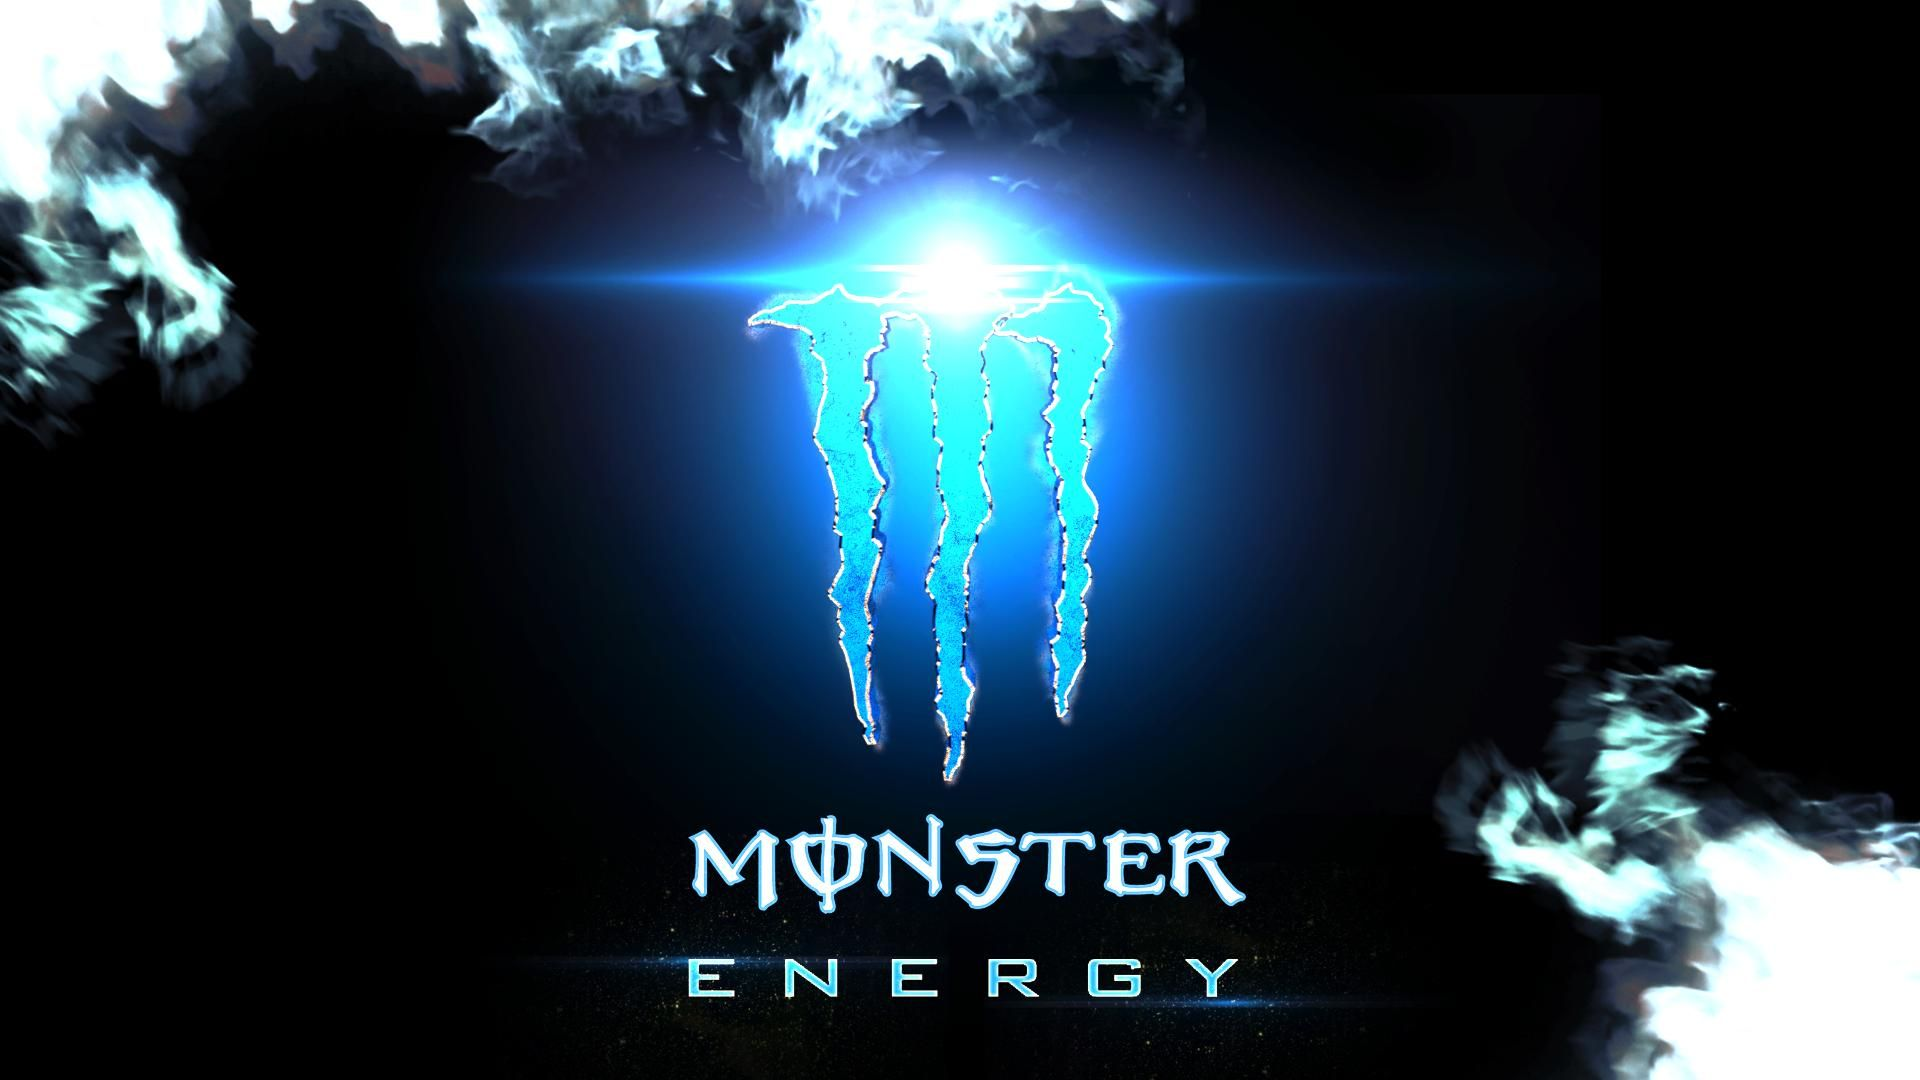 Images about monster wallpapers on pinterest imagenes de hd images about monster wallpapers on pinterest imagenes de voltagebd Images